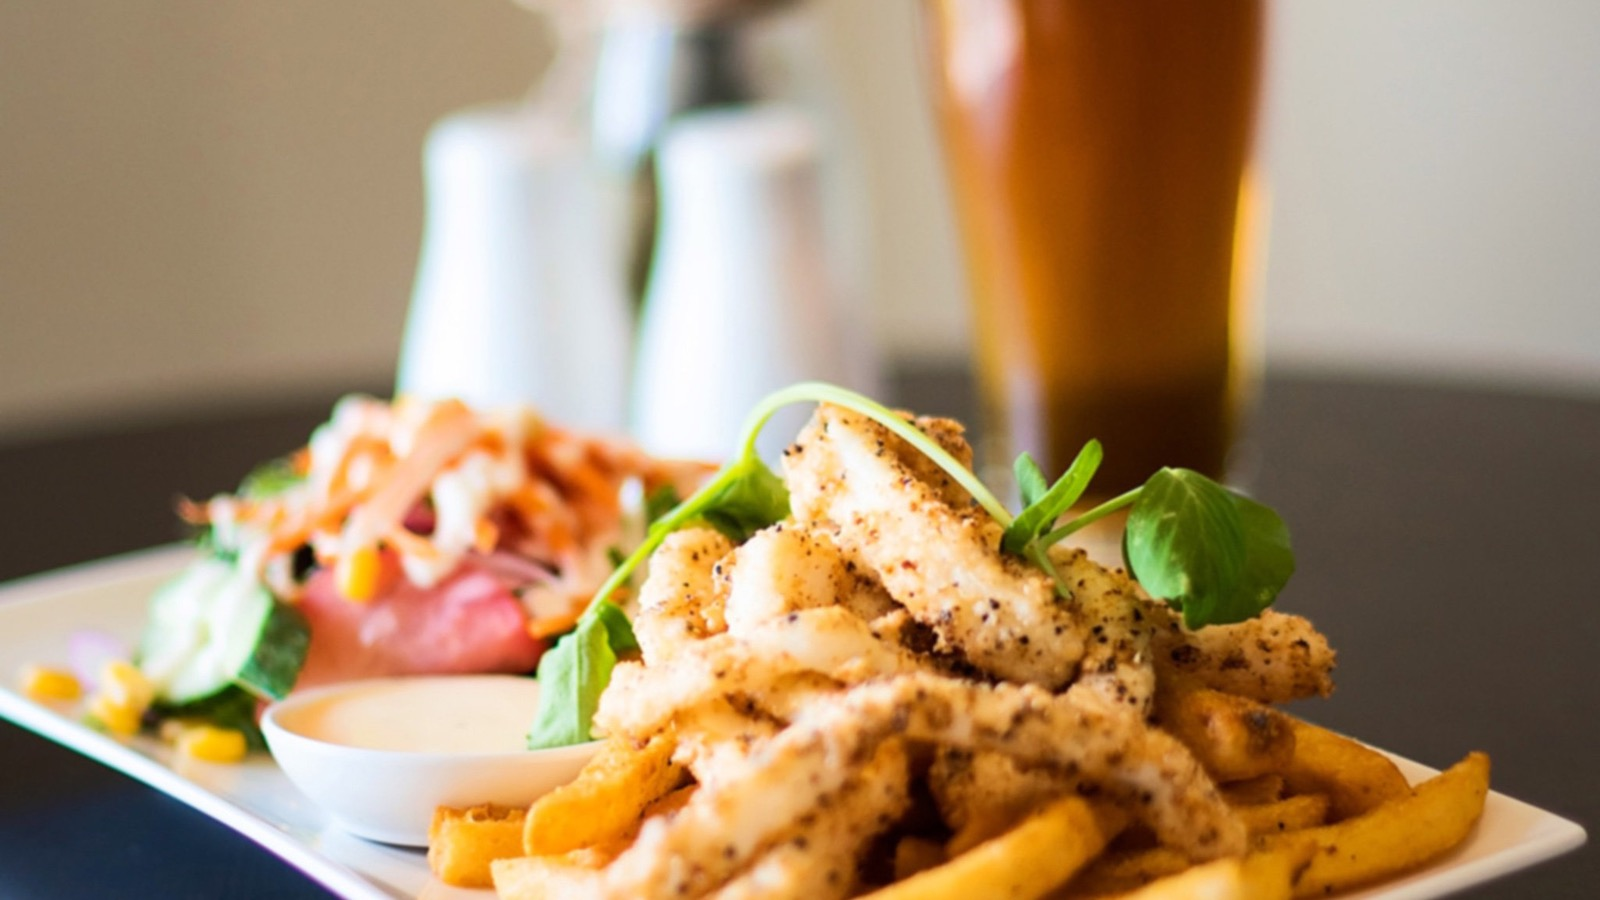 Queenscliff Brewhouse - Salt and Pepper Calamari